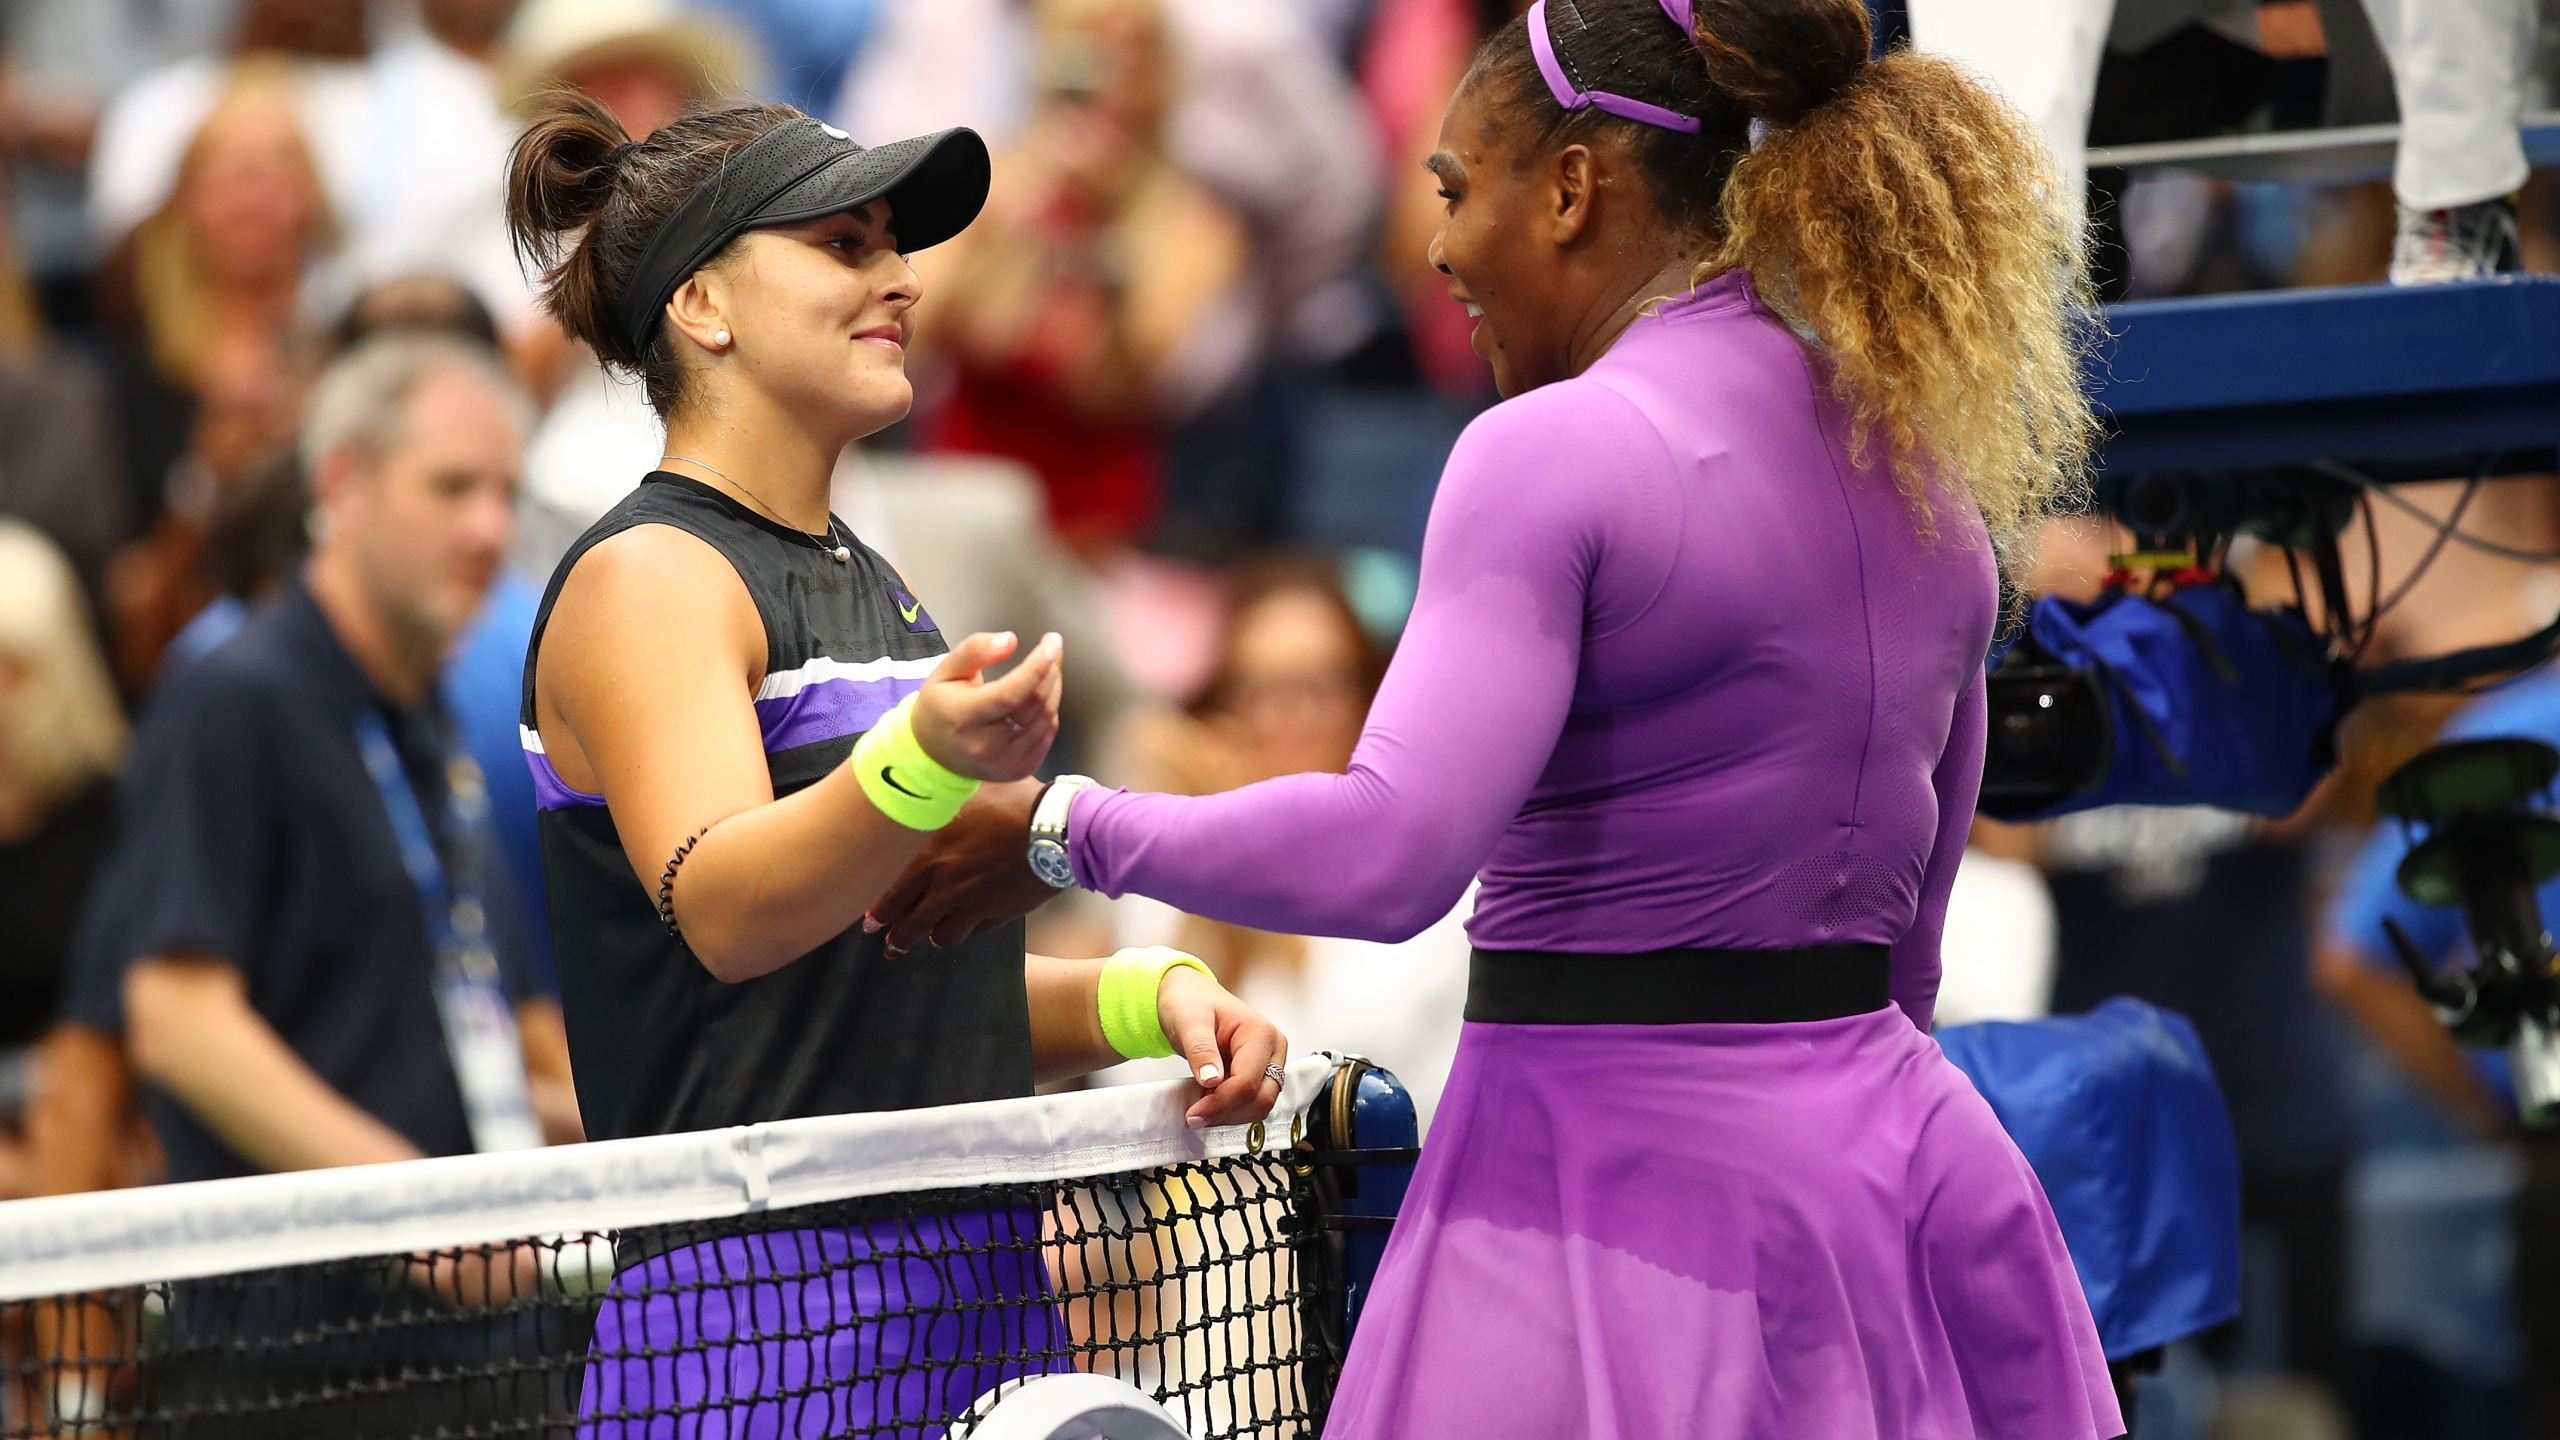 Bianca Andreescu is congratulated by Serena Williams after winning the Women's Singles final match on day thirteen of the 2019 U.S. Open on Sep. 7, 2019, in the Queens borough of New York City. (Credit: Clive Brunskill/Getty Images)